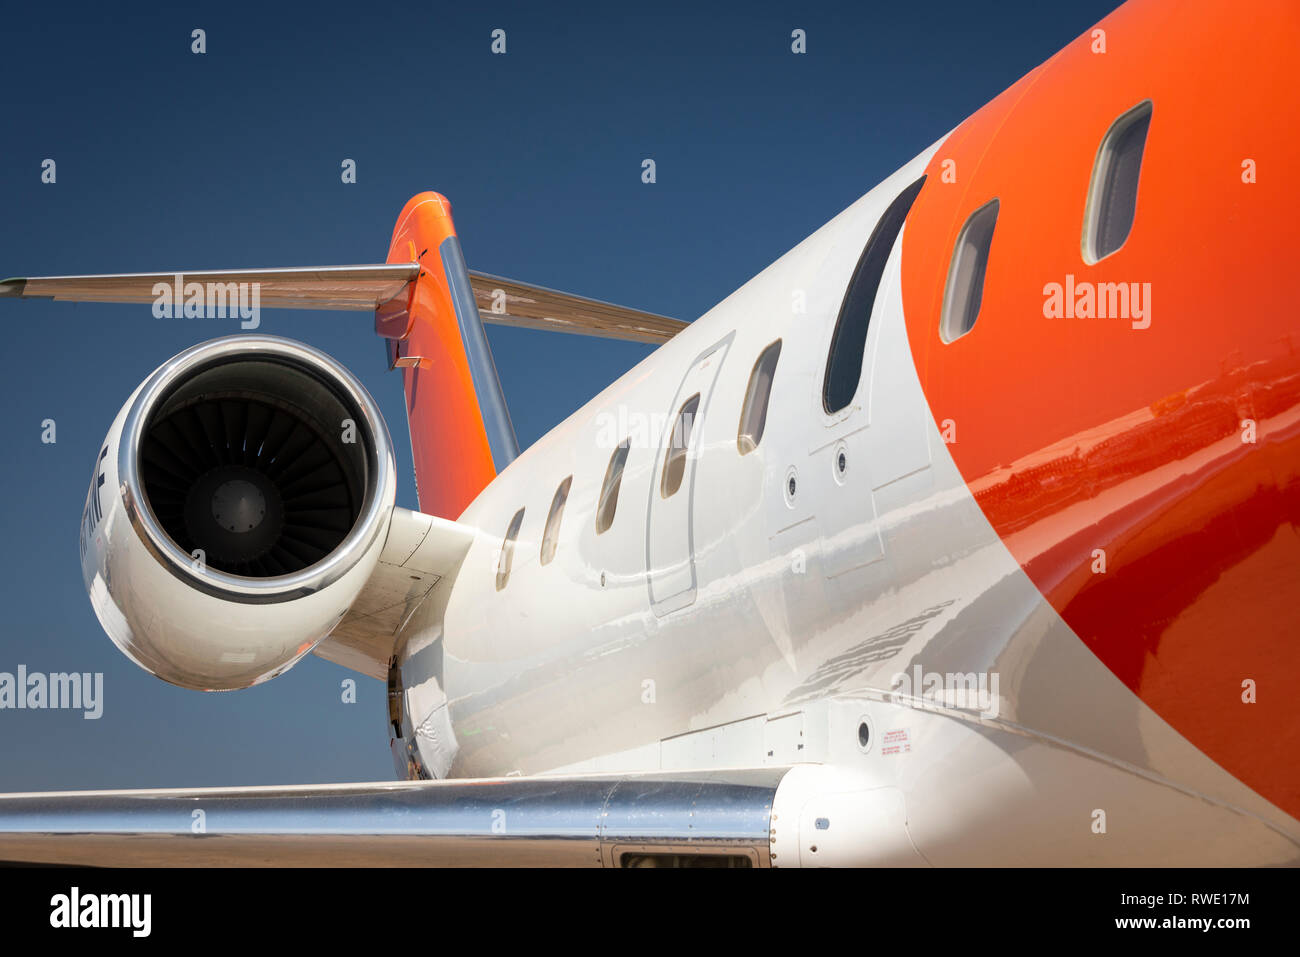 A white and orange private jet airplane against a blue sky - Stock Image